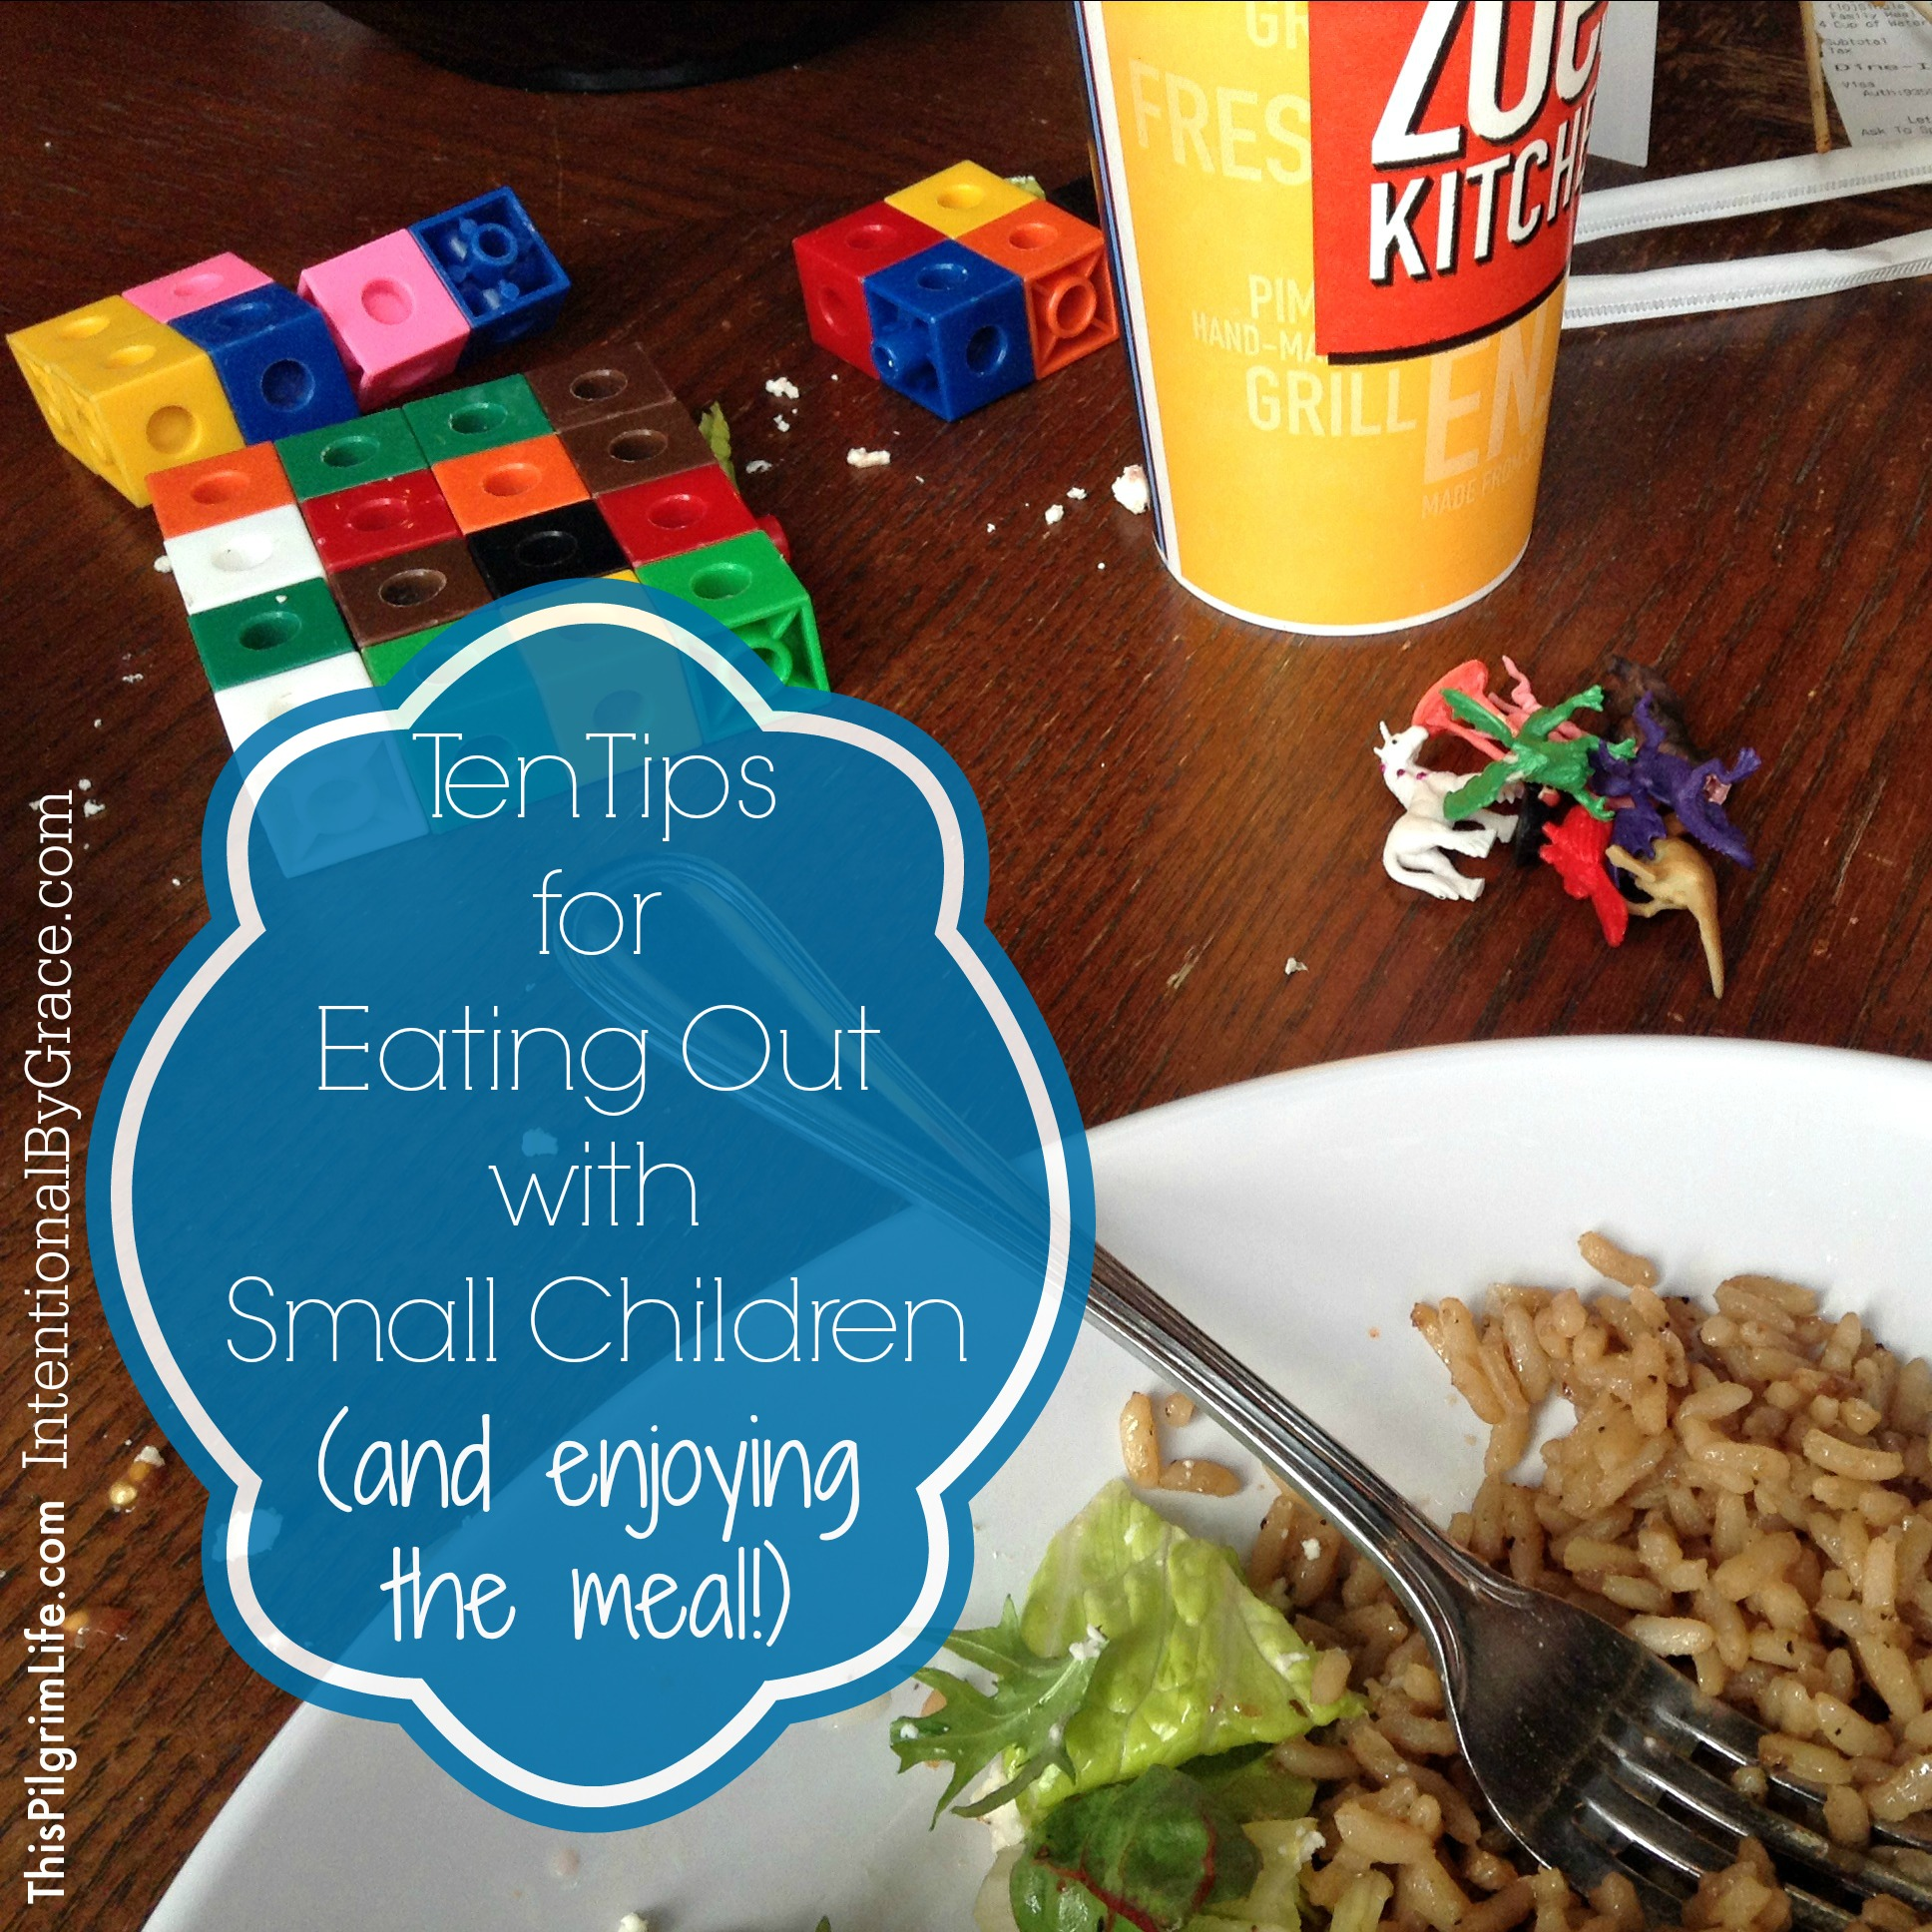 10 Tips for Eating Out with Small Children {and Enjoying the Meal!}